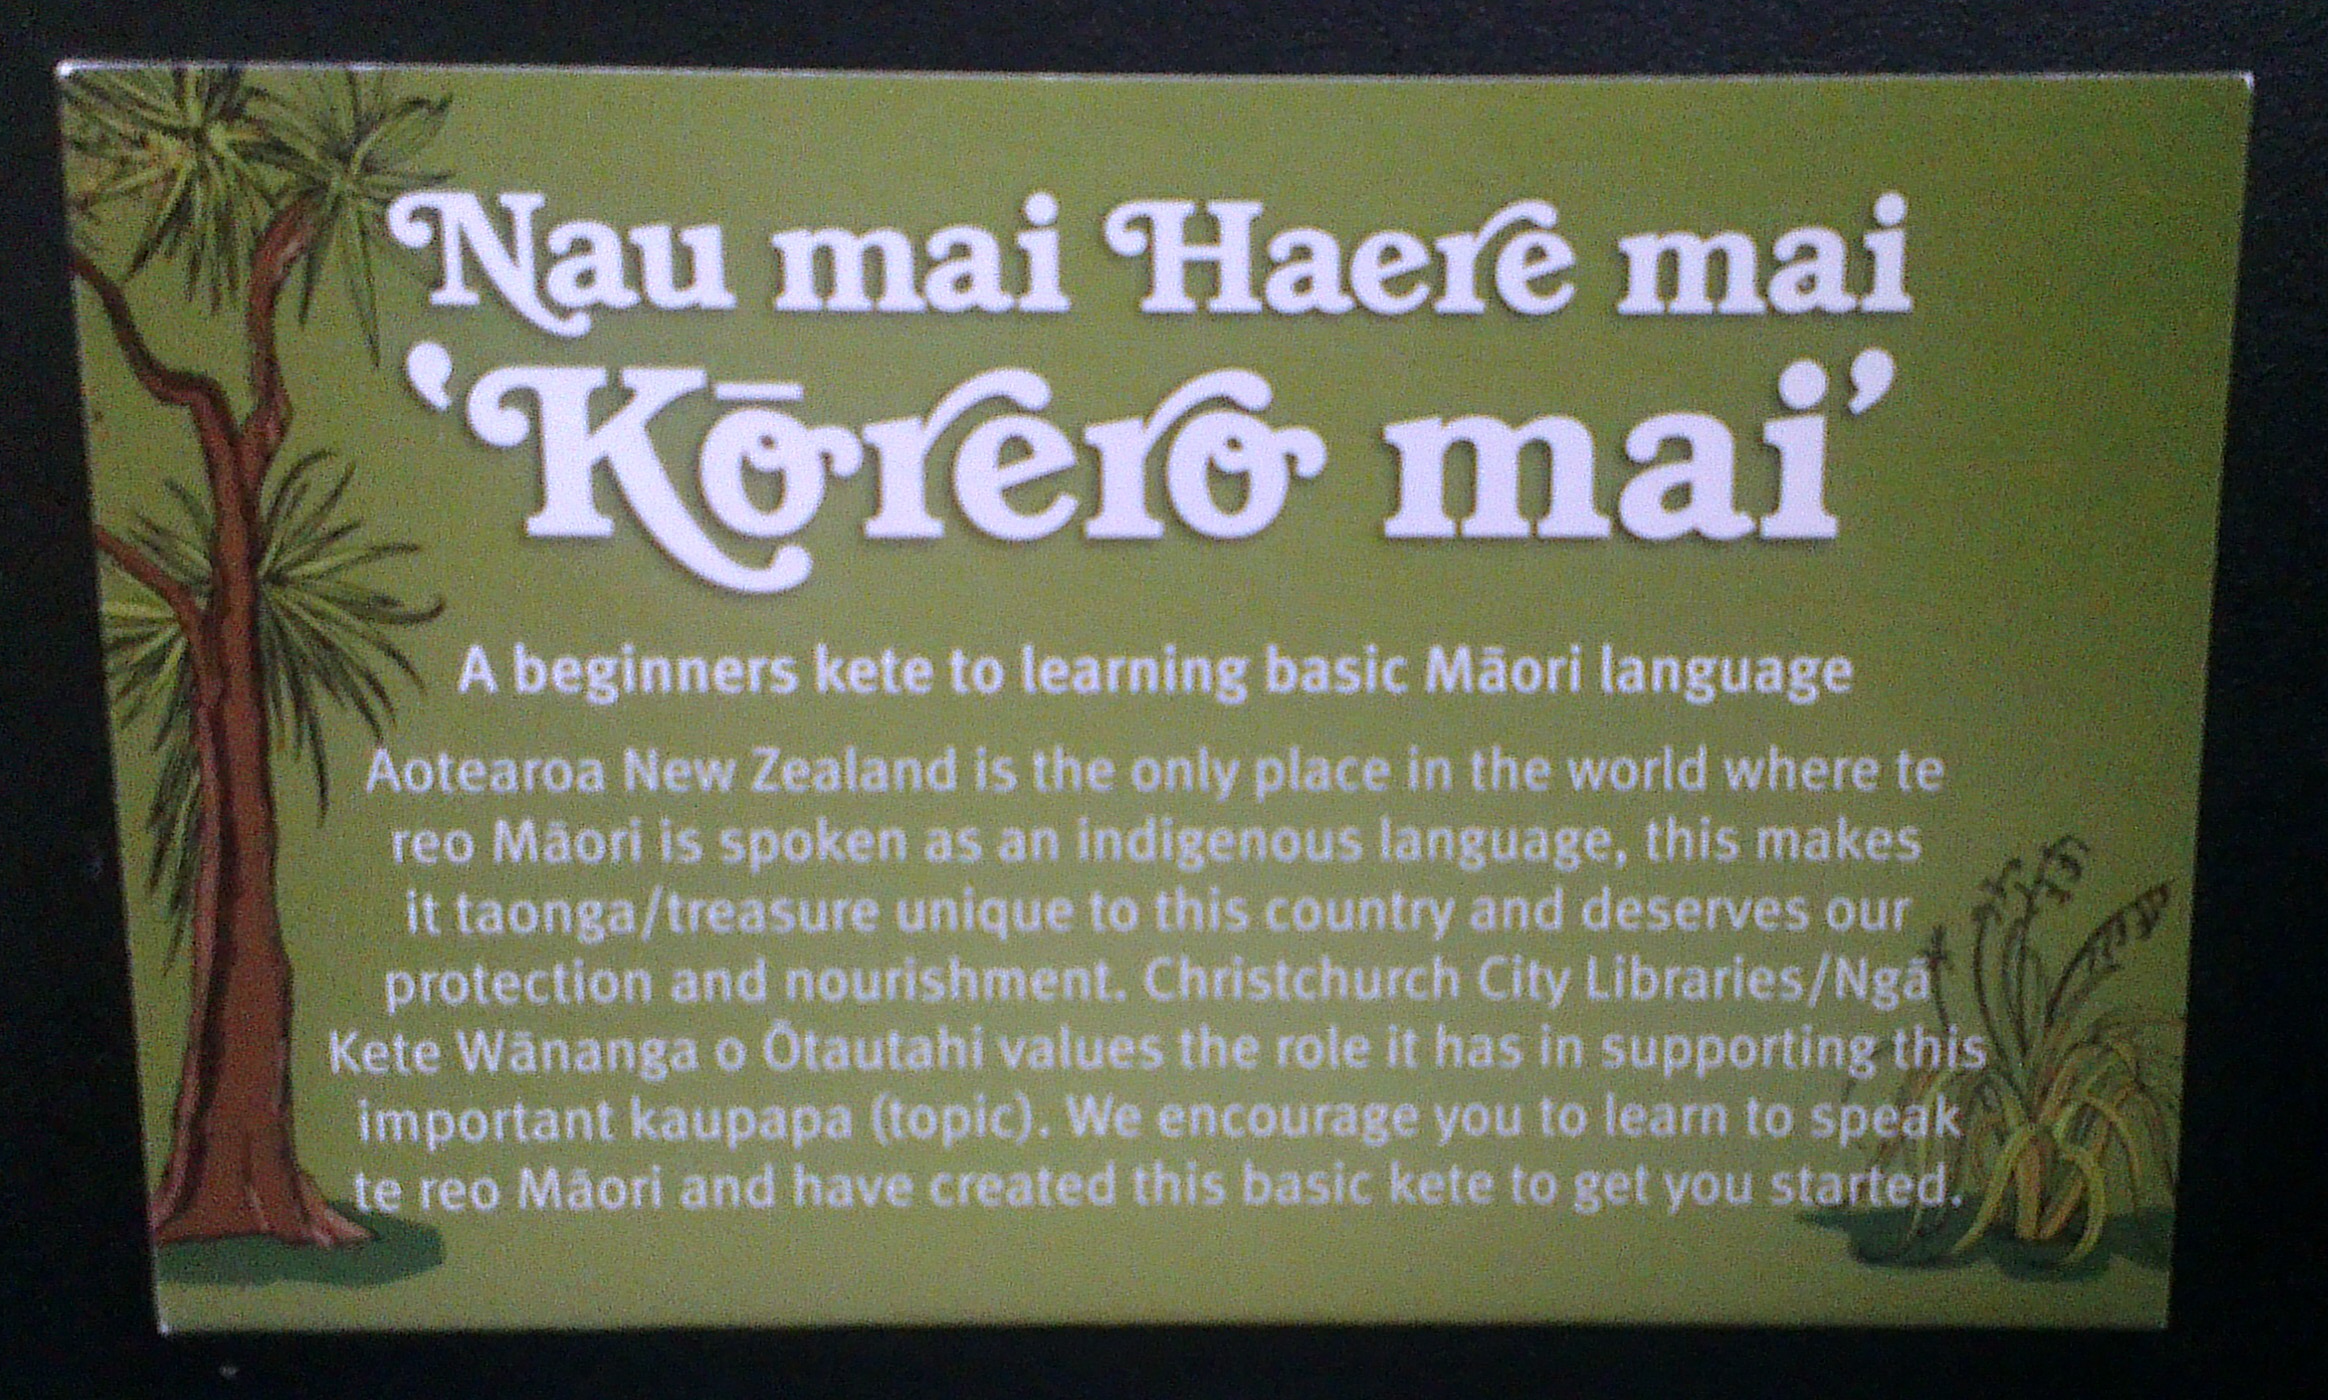 Kete distributed by Christchurch City Librariesduring the Maori Language Week